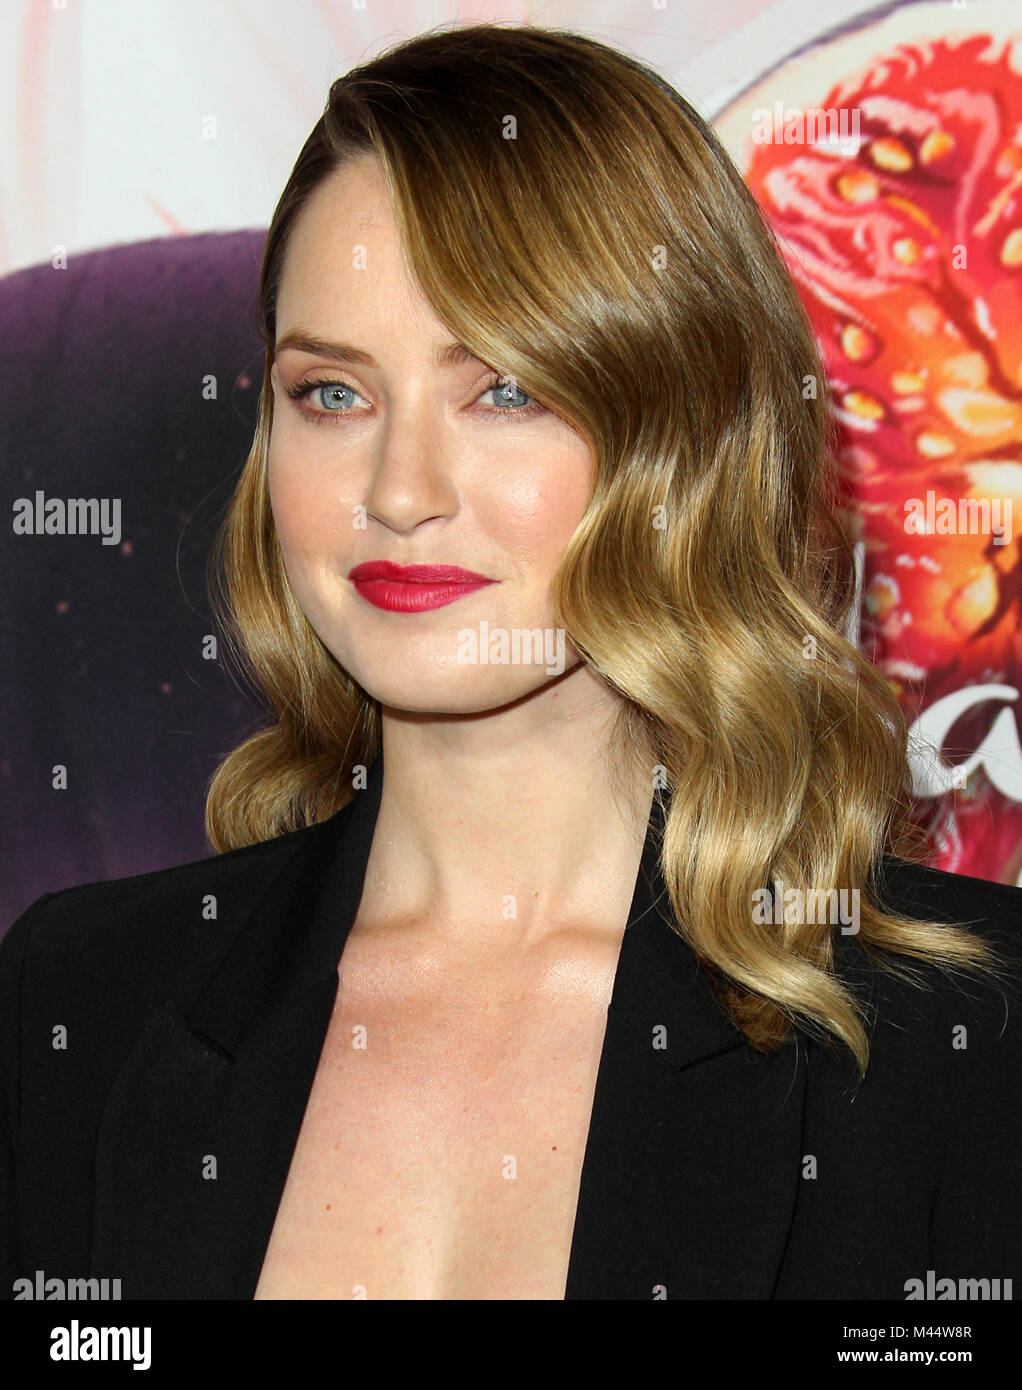 Merritt patterson stock photos merritt patterson stock for Hallmark movies and mysteries channel